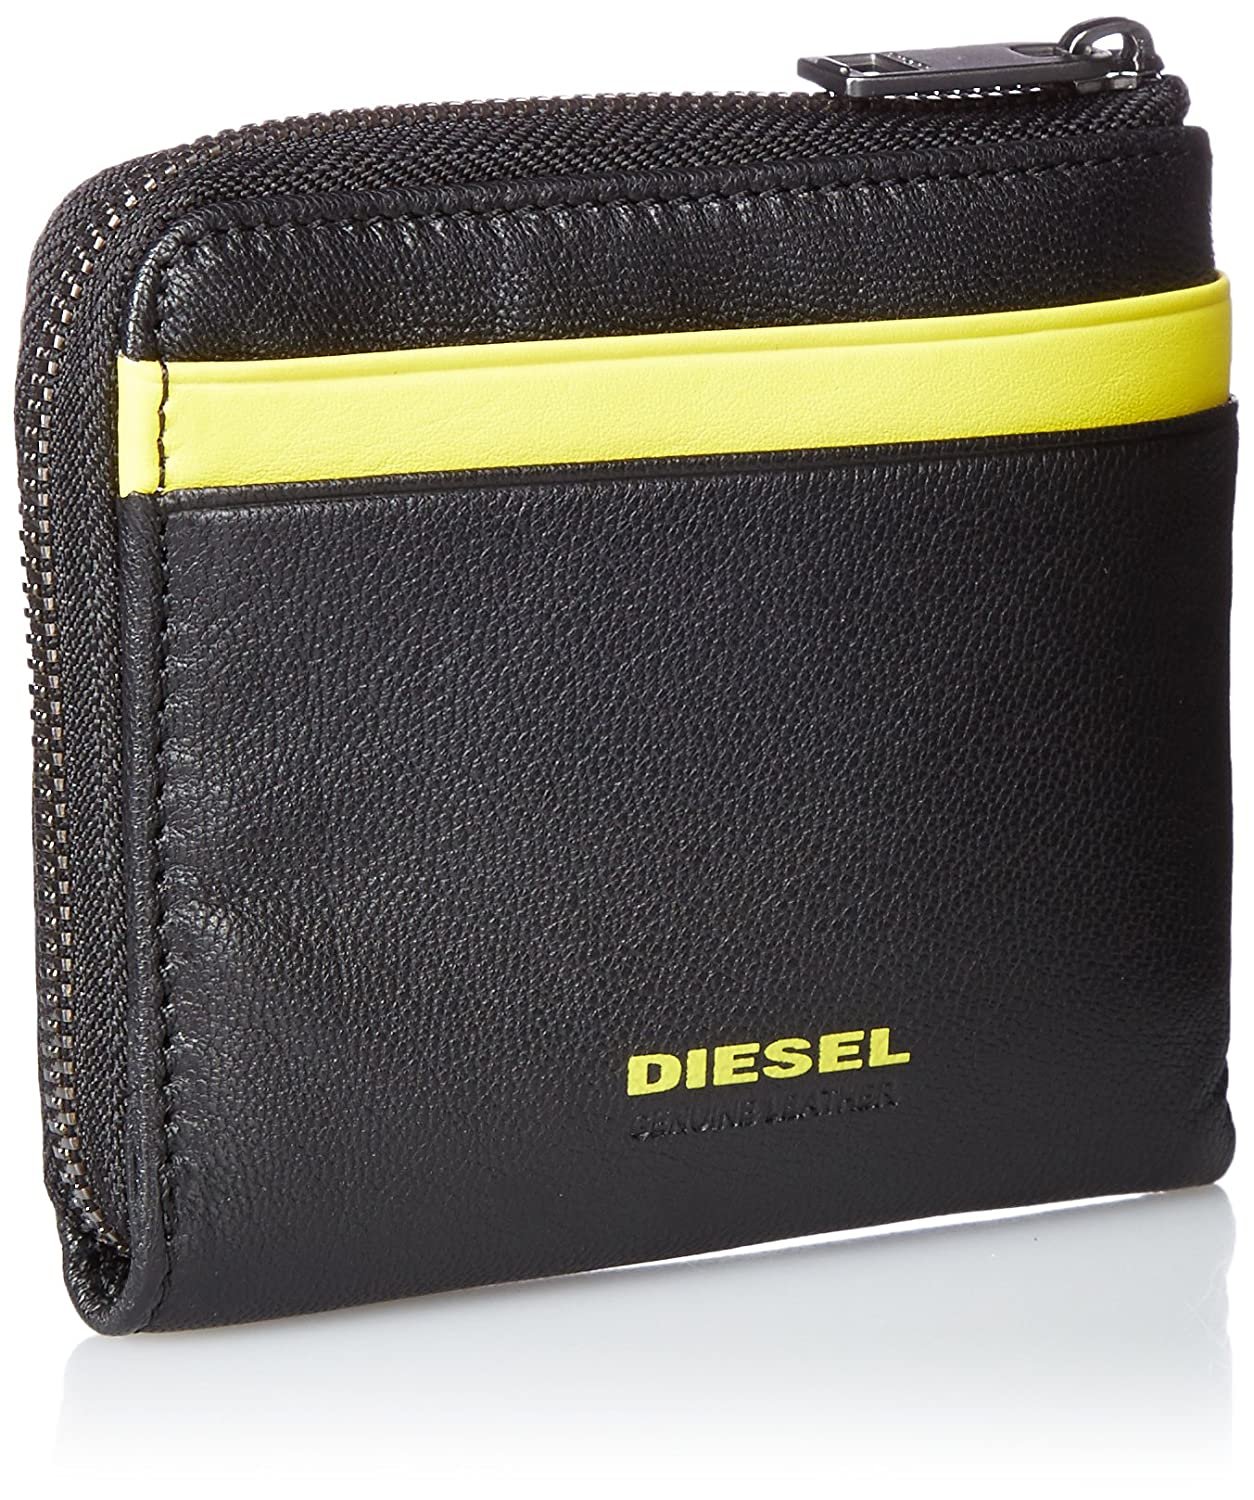 35c4c6088a40 Amazon.com  Diesel Men s Fresh Starter Pass-Mee Leather Wallet with Zipper